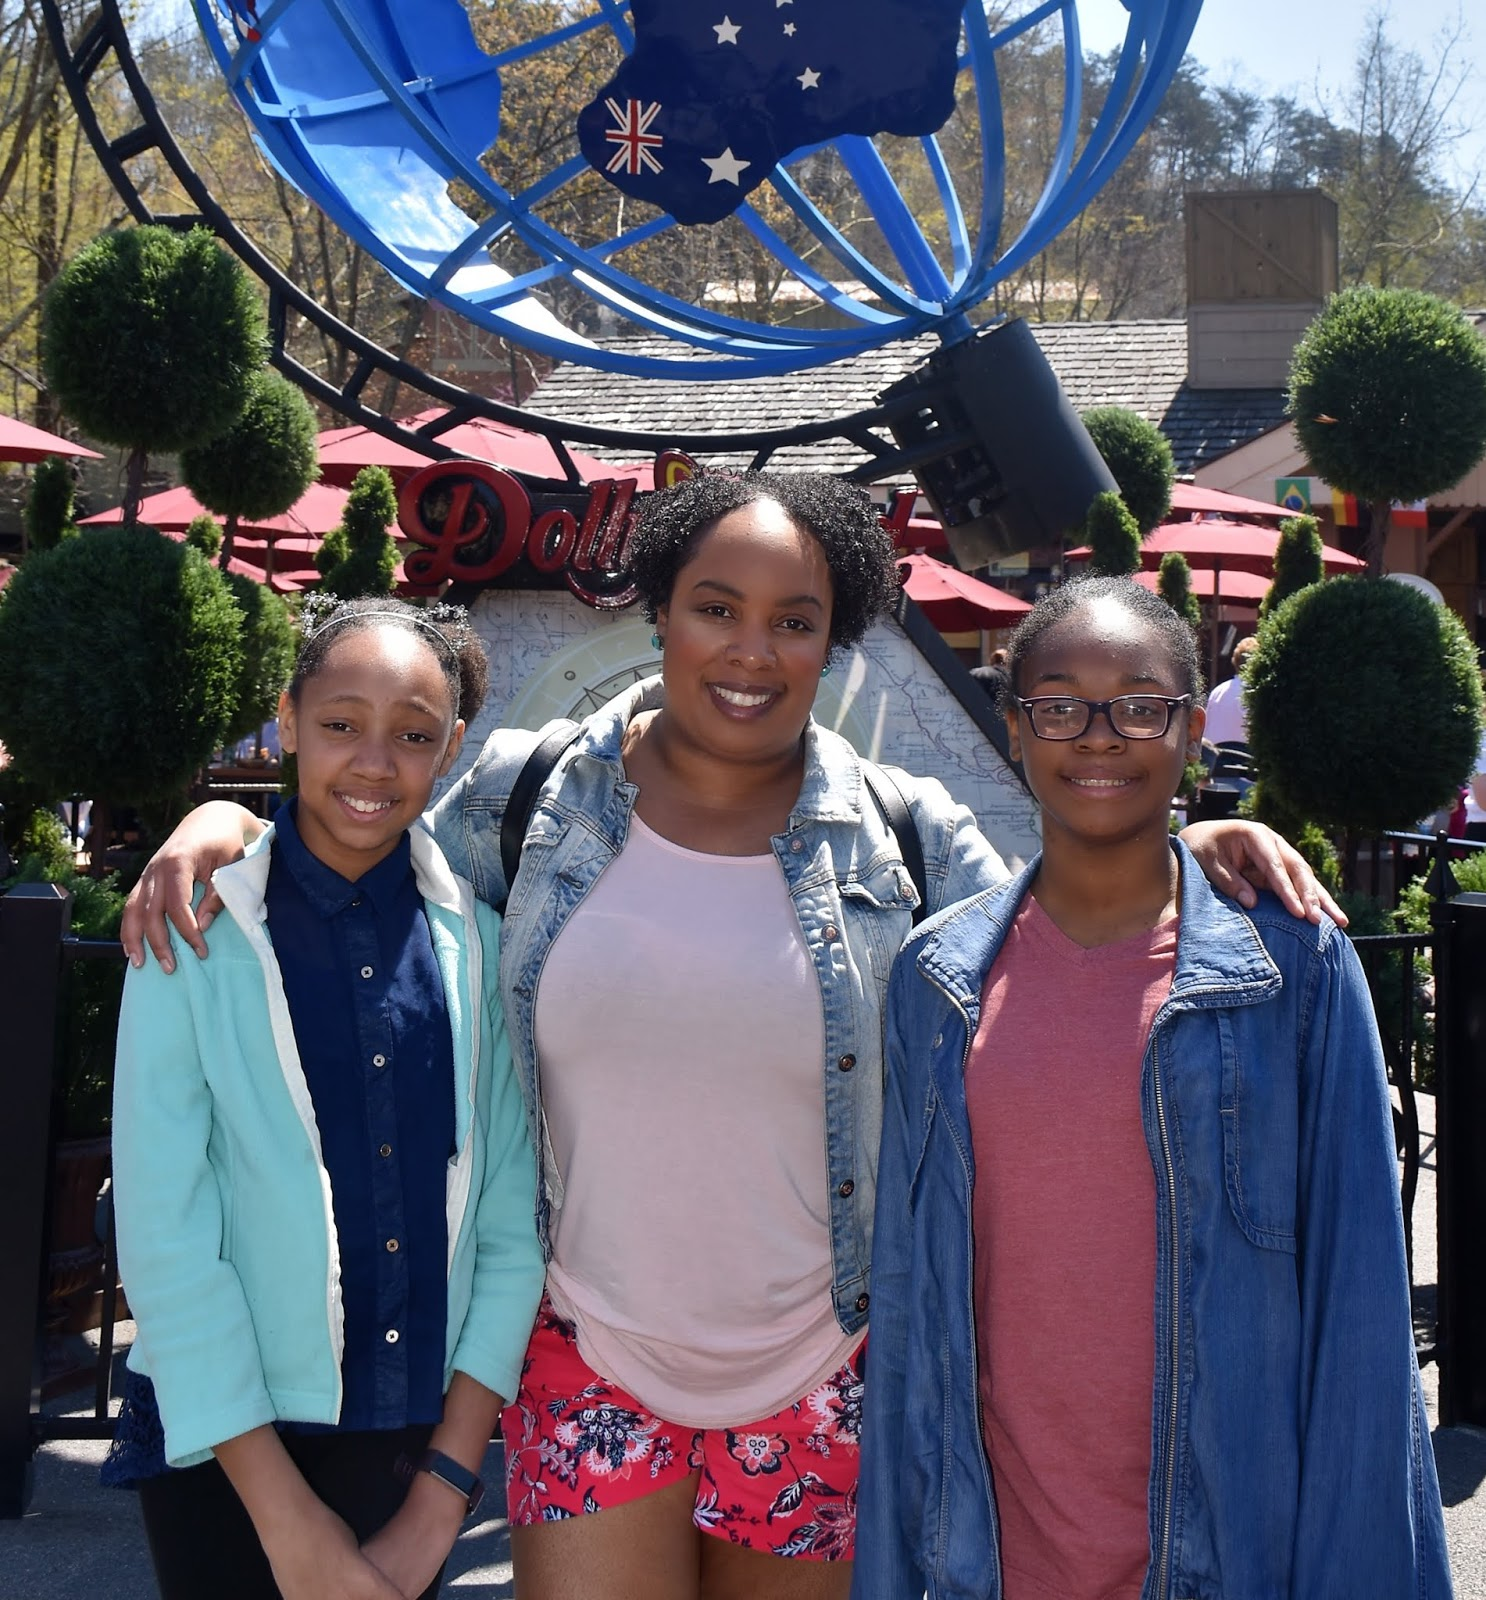 Family Fun at Dollywood